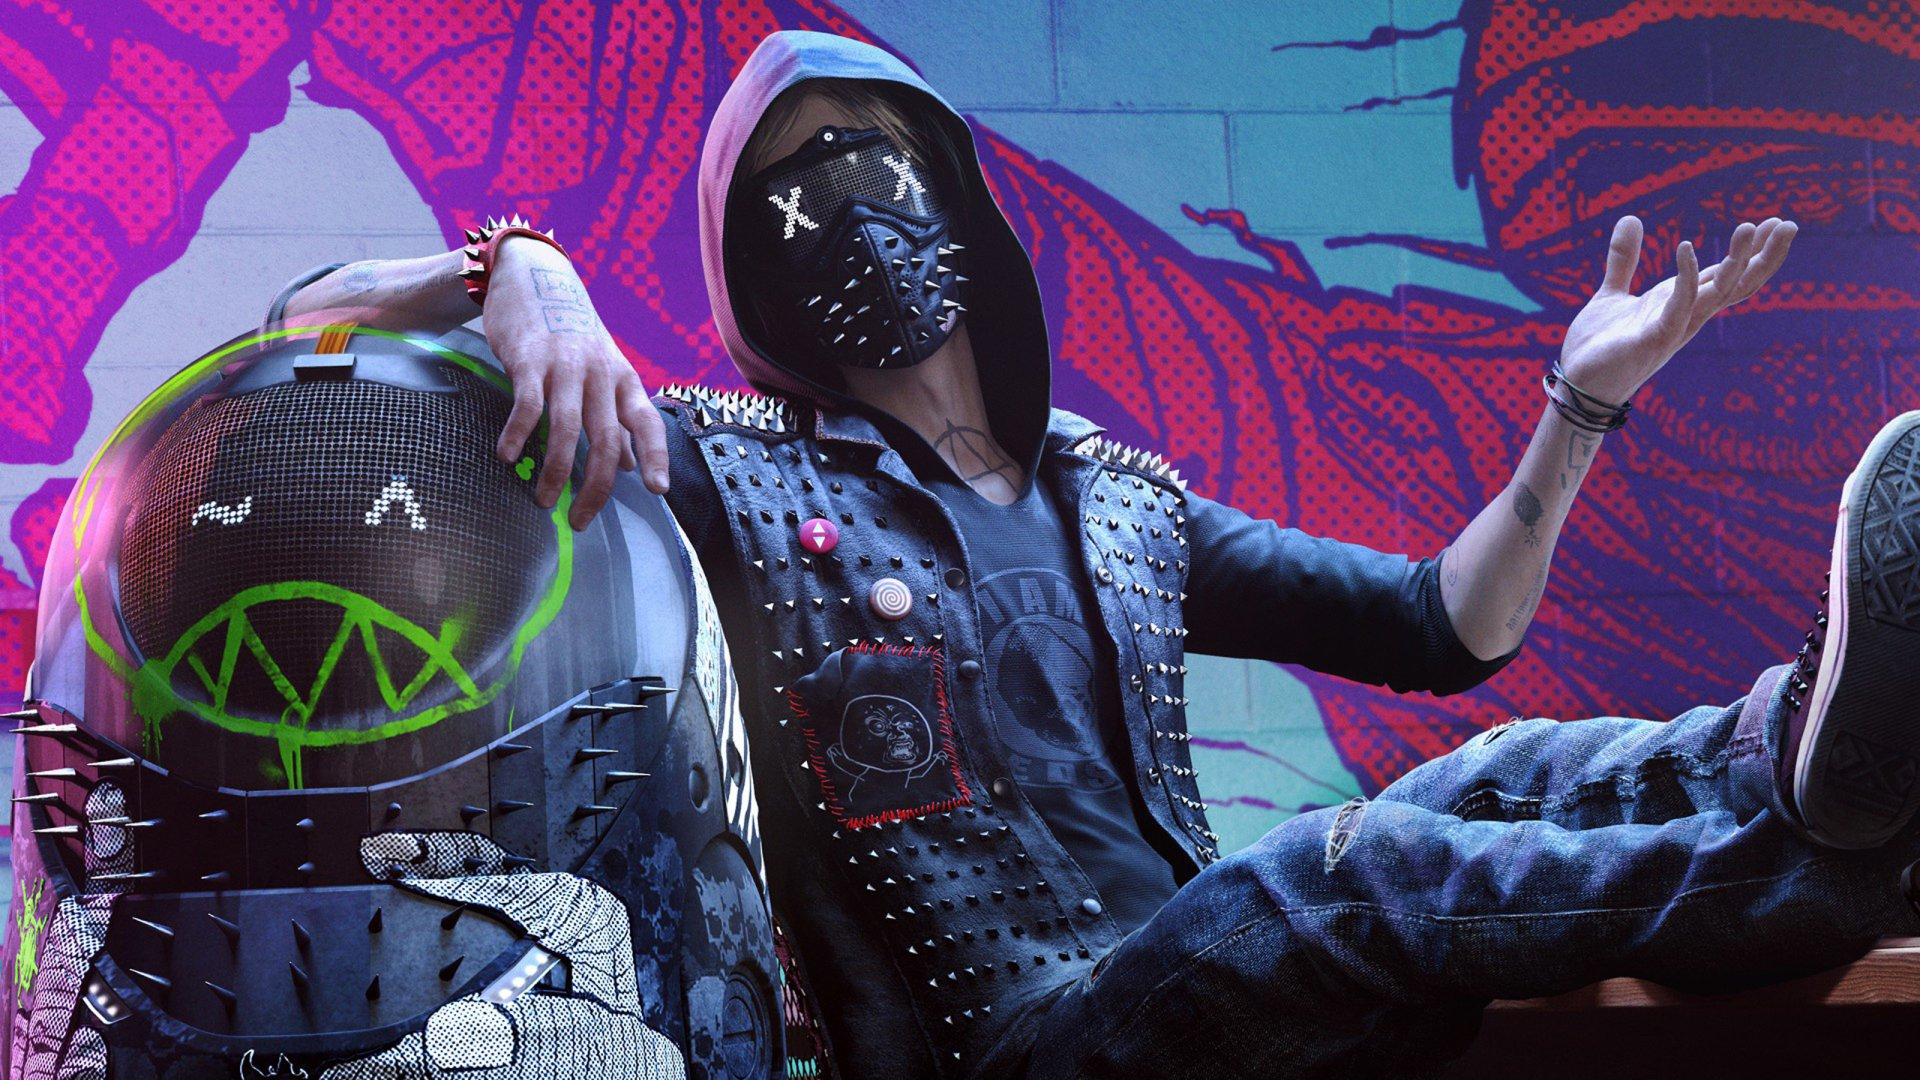 Video Game - Watch Dogs 2  Wrench (Watch Dogs) Wallpaper